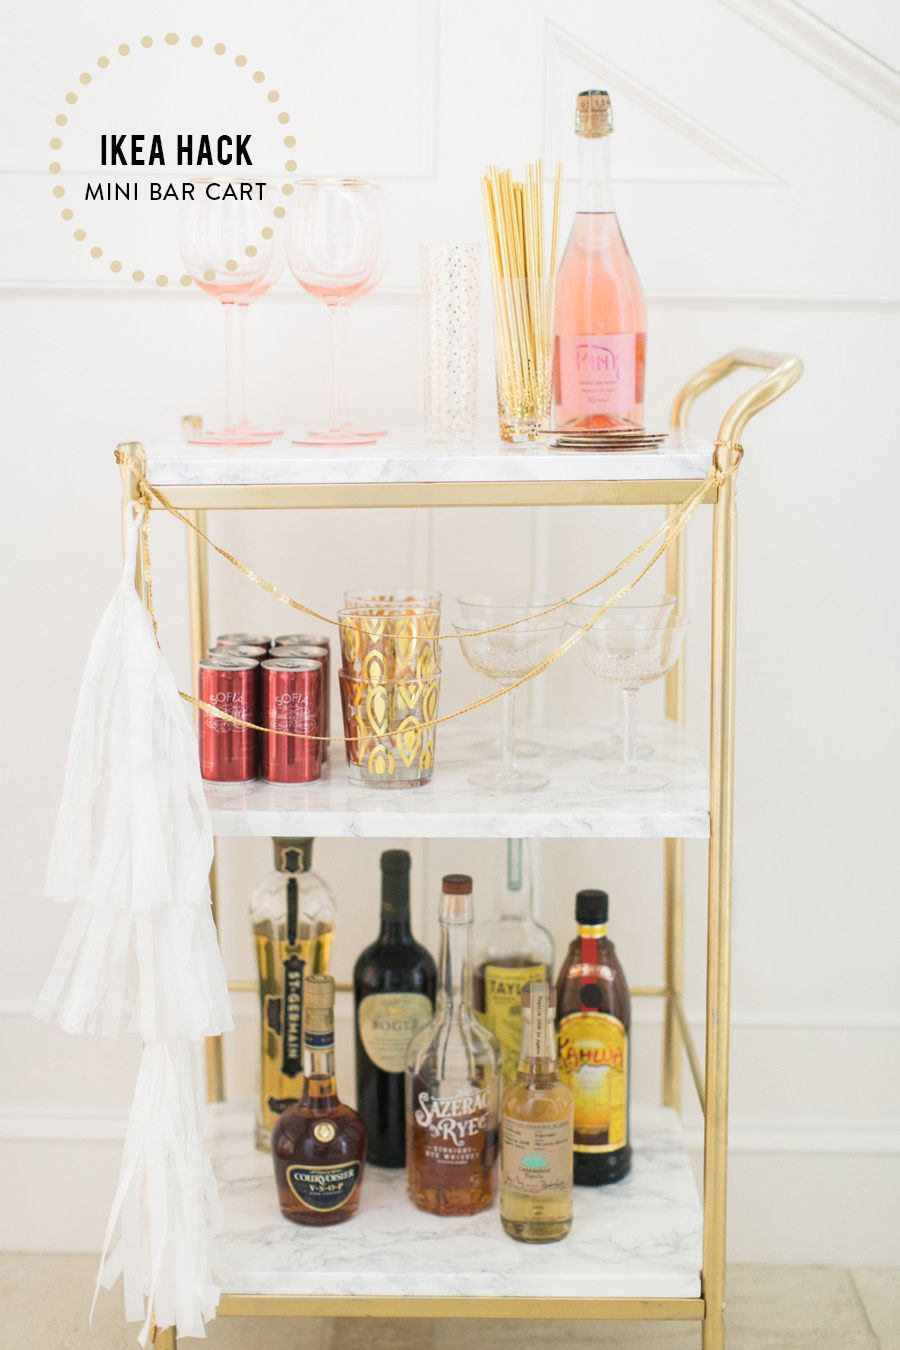 Ikea Hack: DIY Mini Bar Cart | Bar carts, Ikea hack and Bar